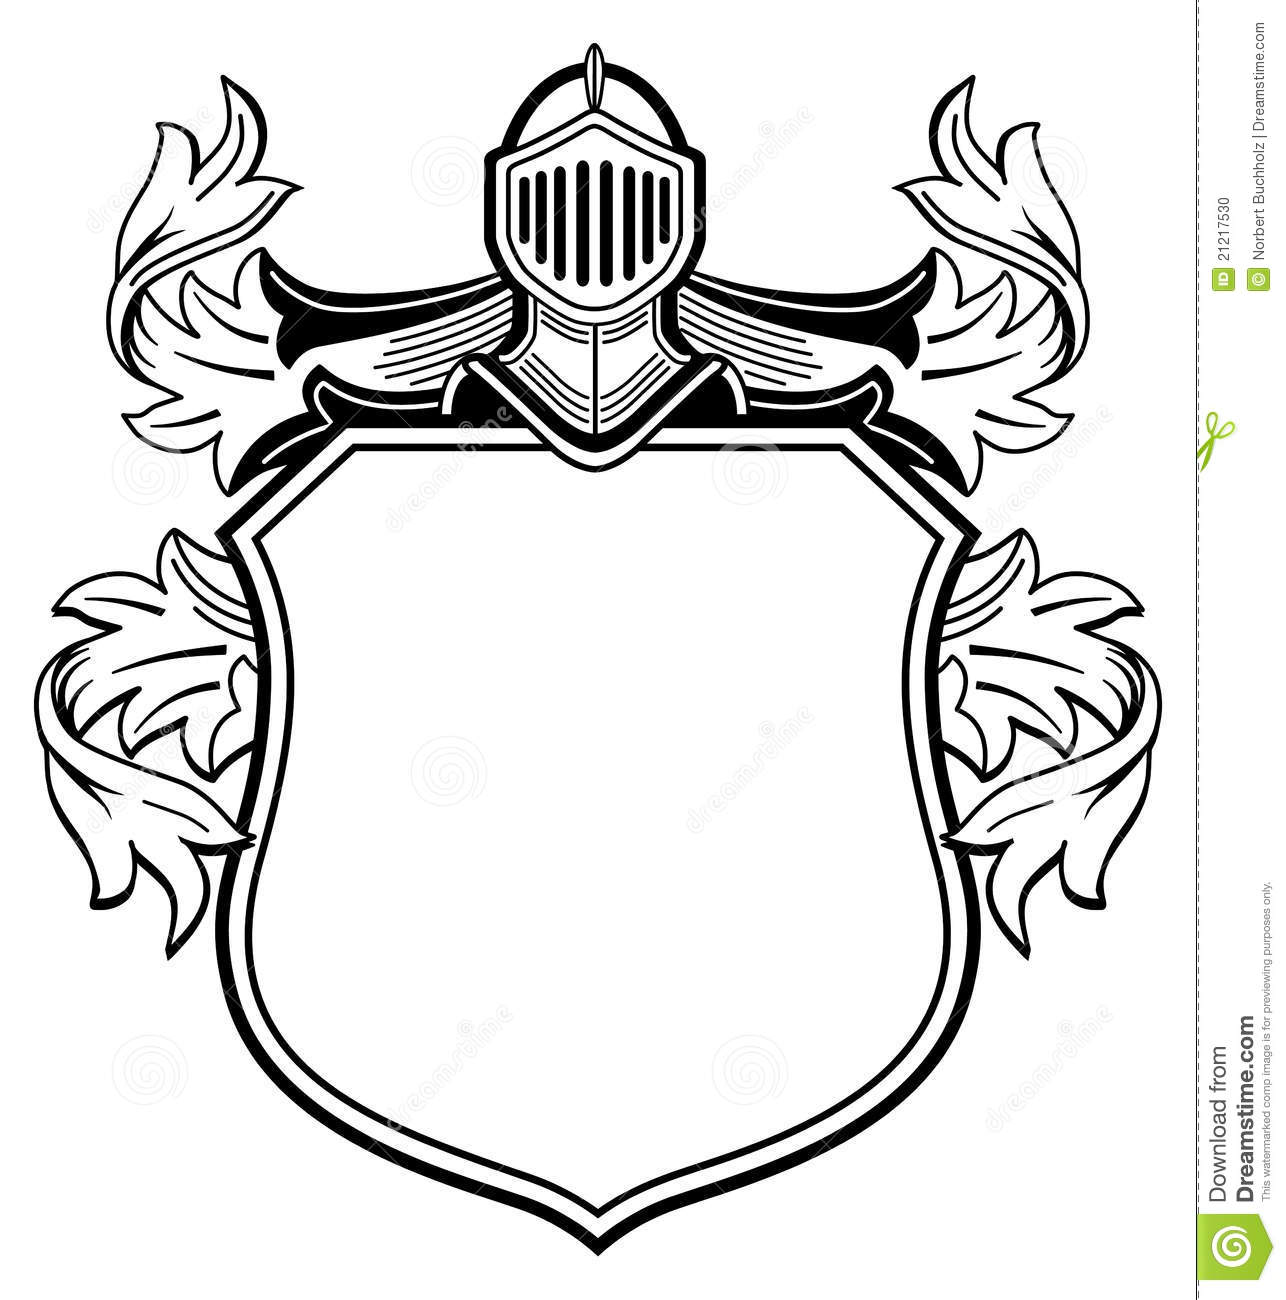 Free coat of arms clipart 2 » Clipart Station.